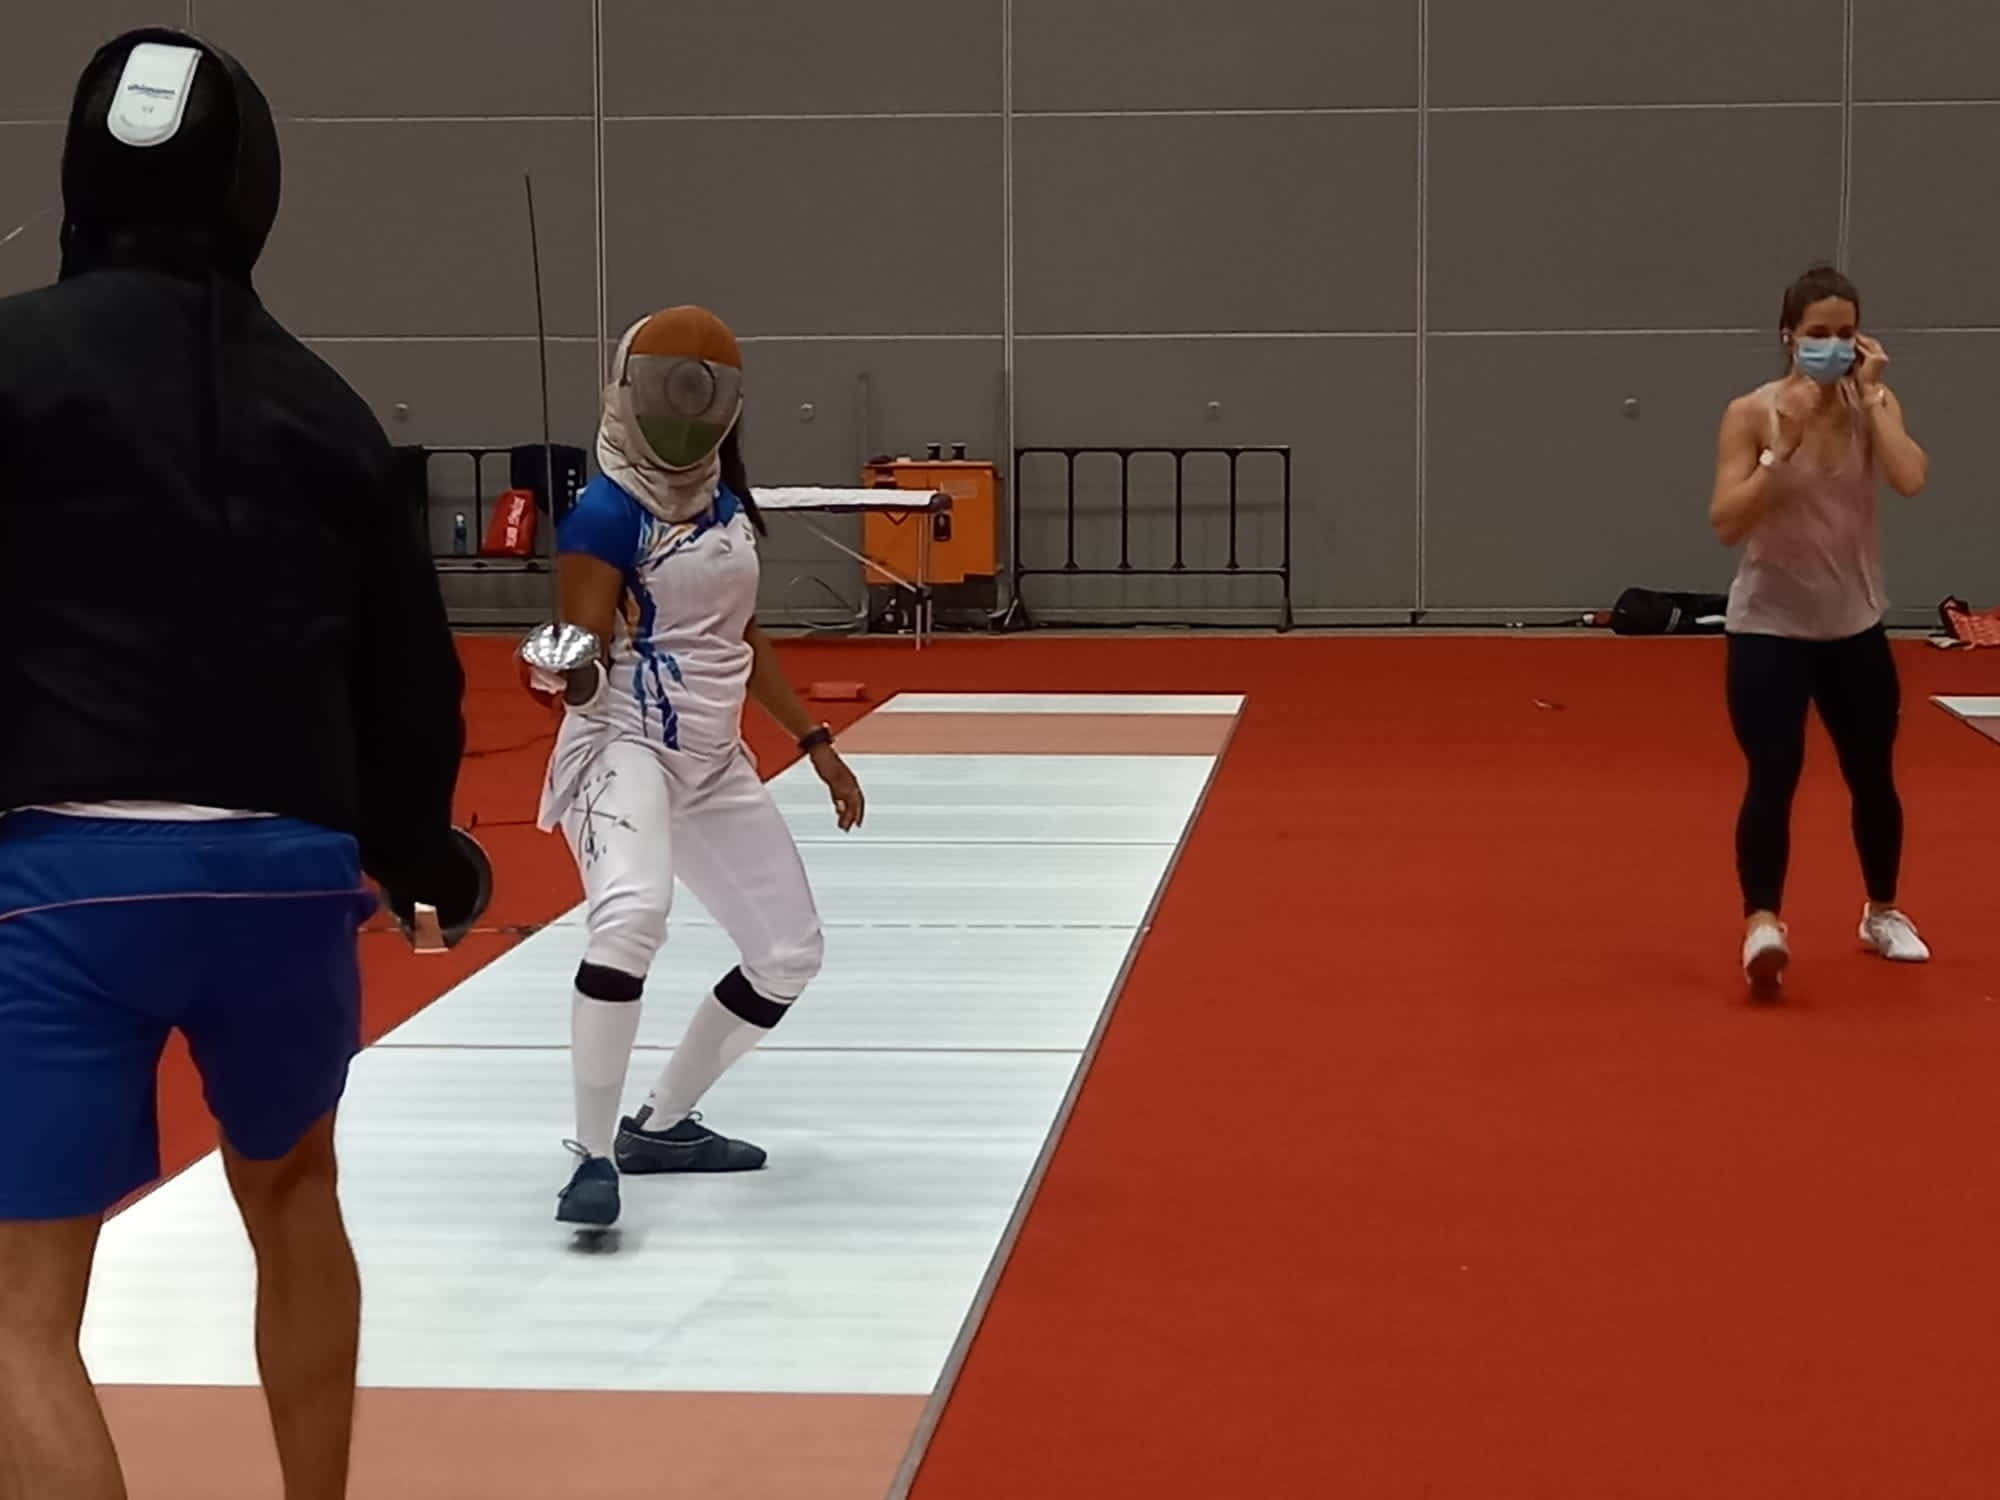 <p>Bhavani Devi in training session, she's India's first ever woman fencer to reach Olympics 2020 in Tokyo.</p>